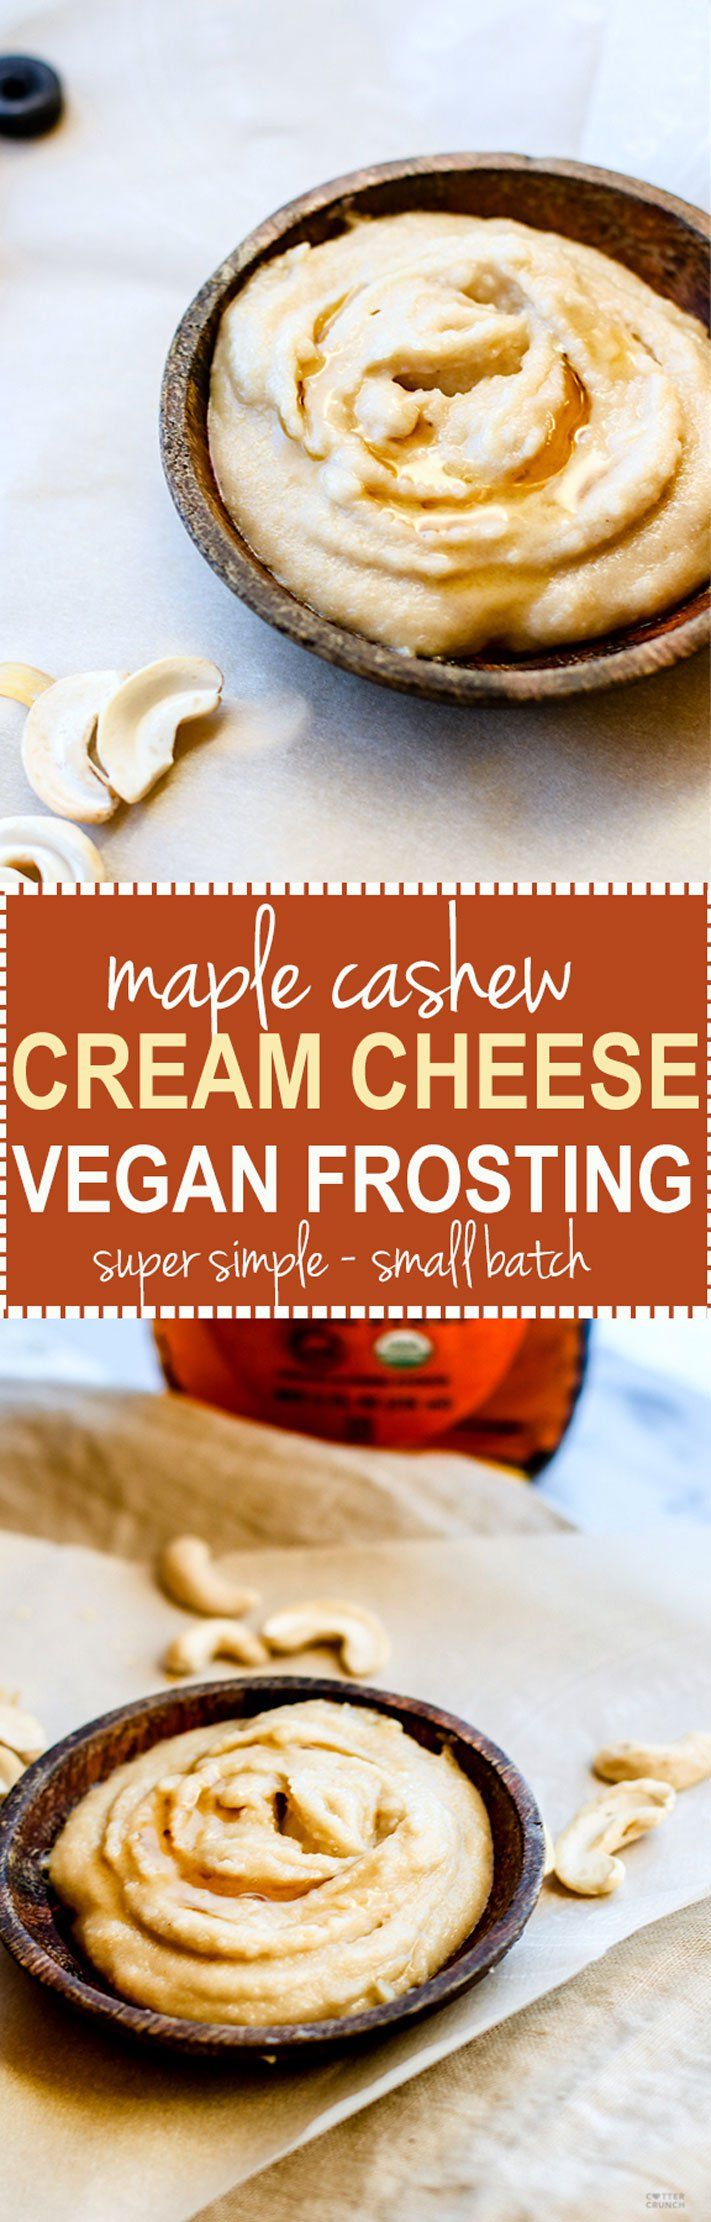 Maple Cashew Cream Cheese Frosting